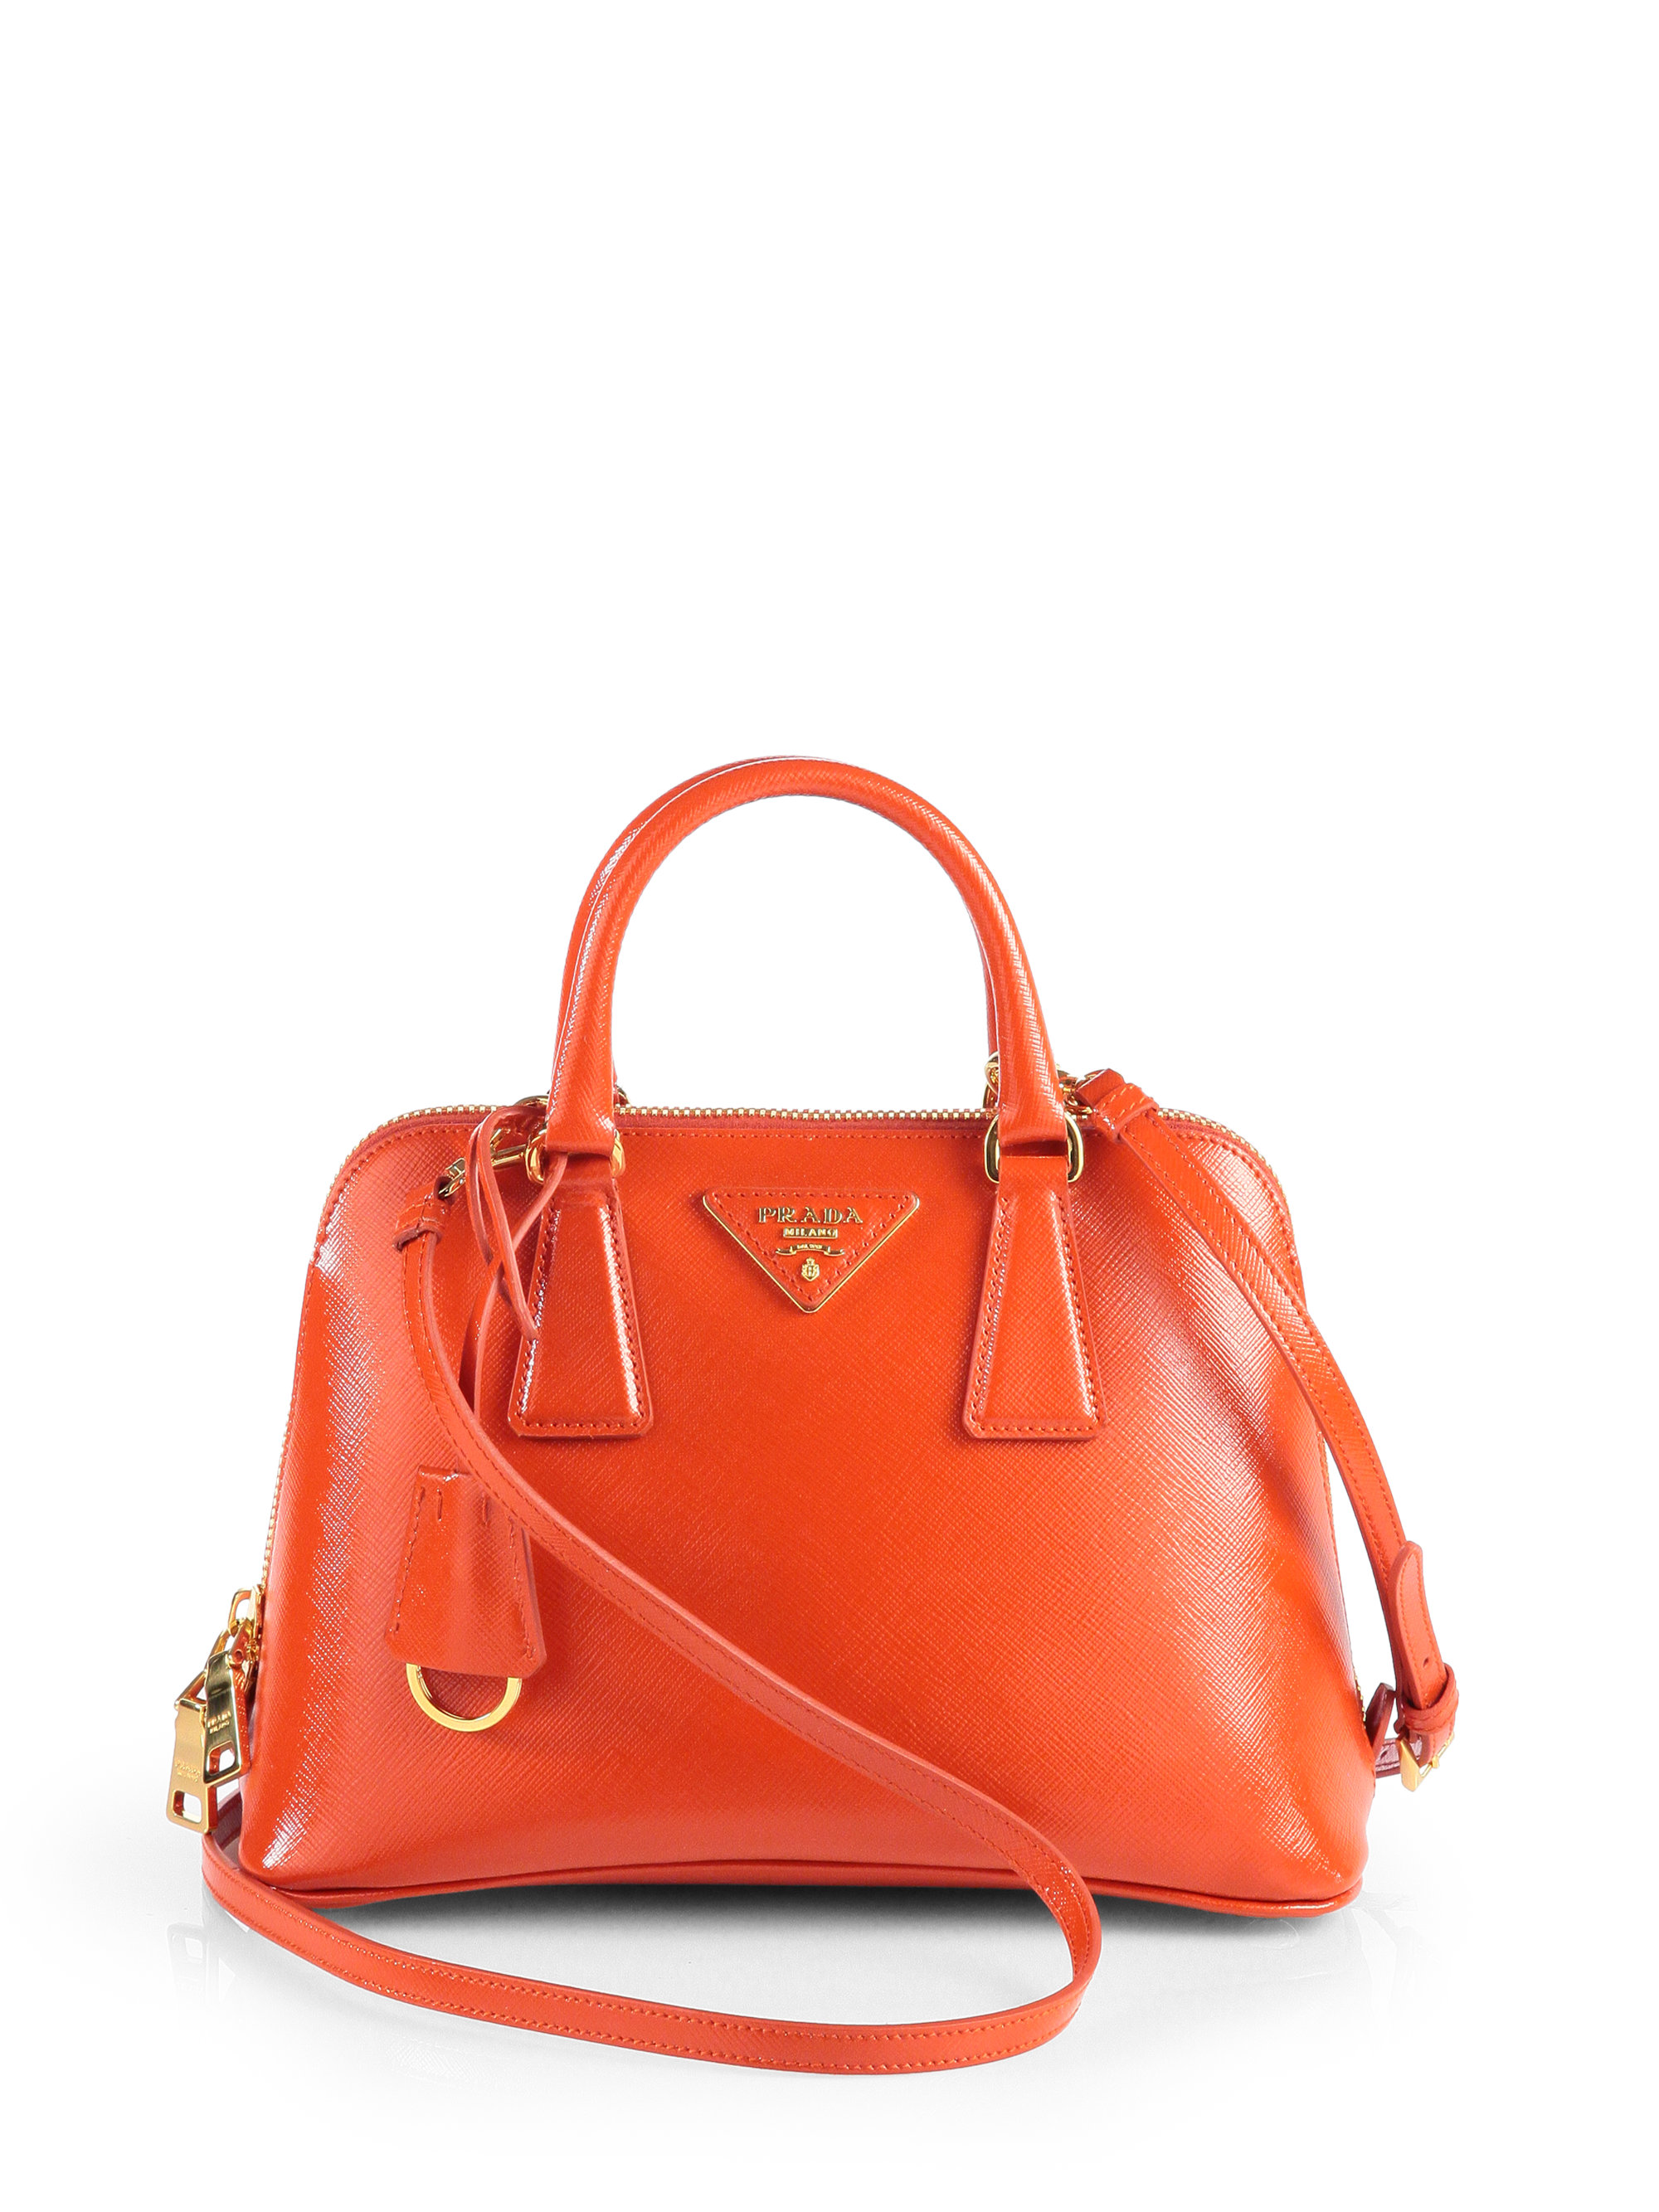 inexpensive prada pyramid canary yellow top handle bag for sale be899  405da  promo code for lyst prada saffiano vernice small round top handle  bag in orange ... 288d755da7a3c